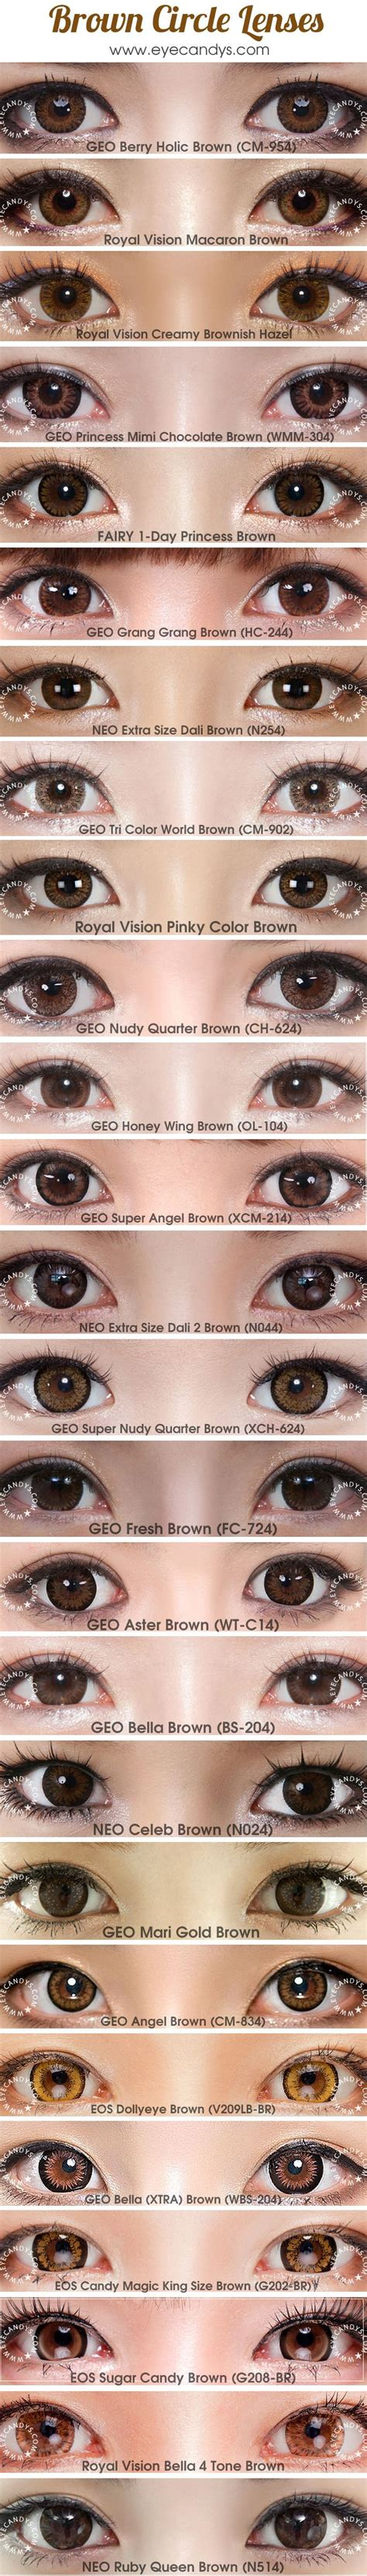 colored circle lenses best 20 colored contacts ideas on colored eye